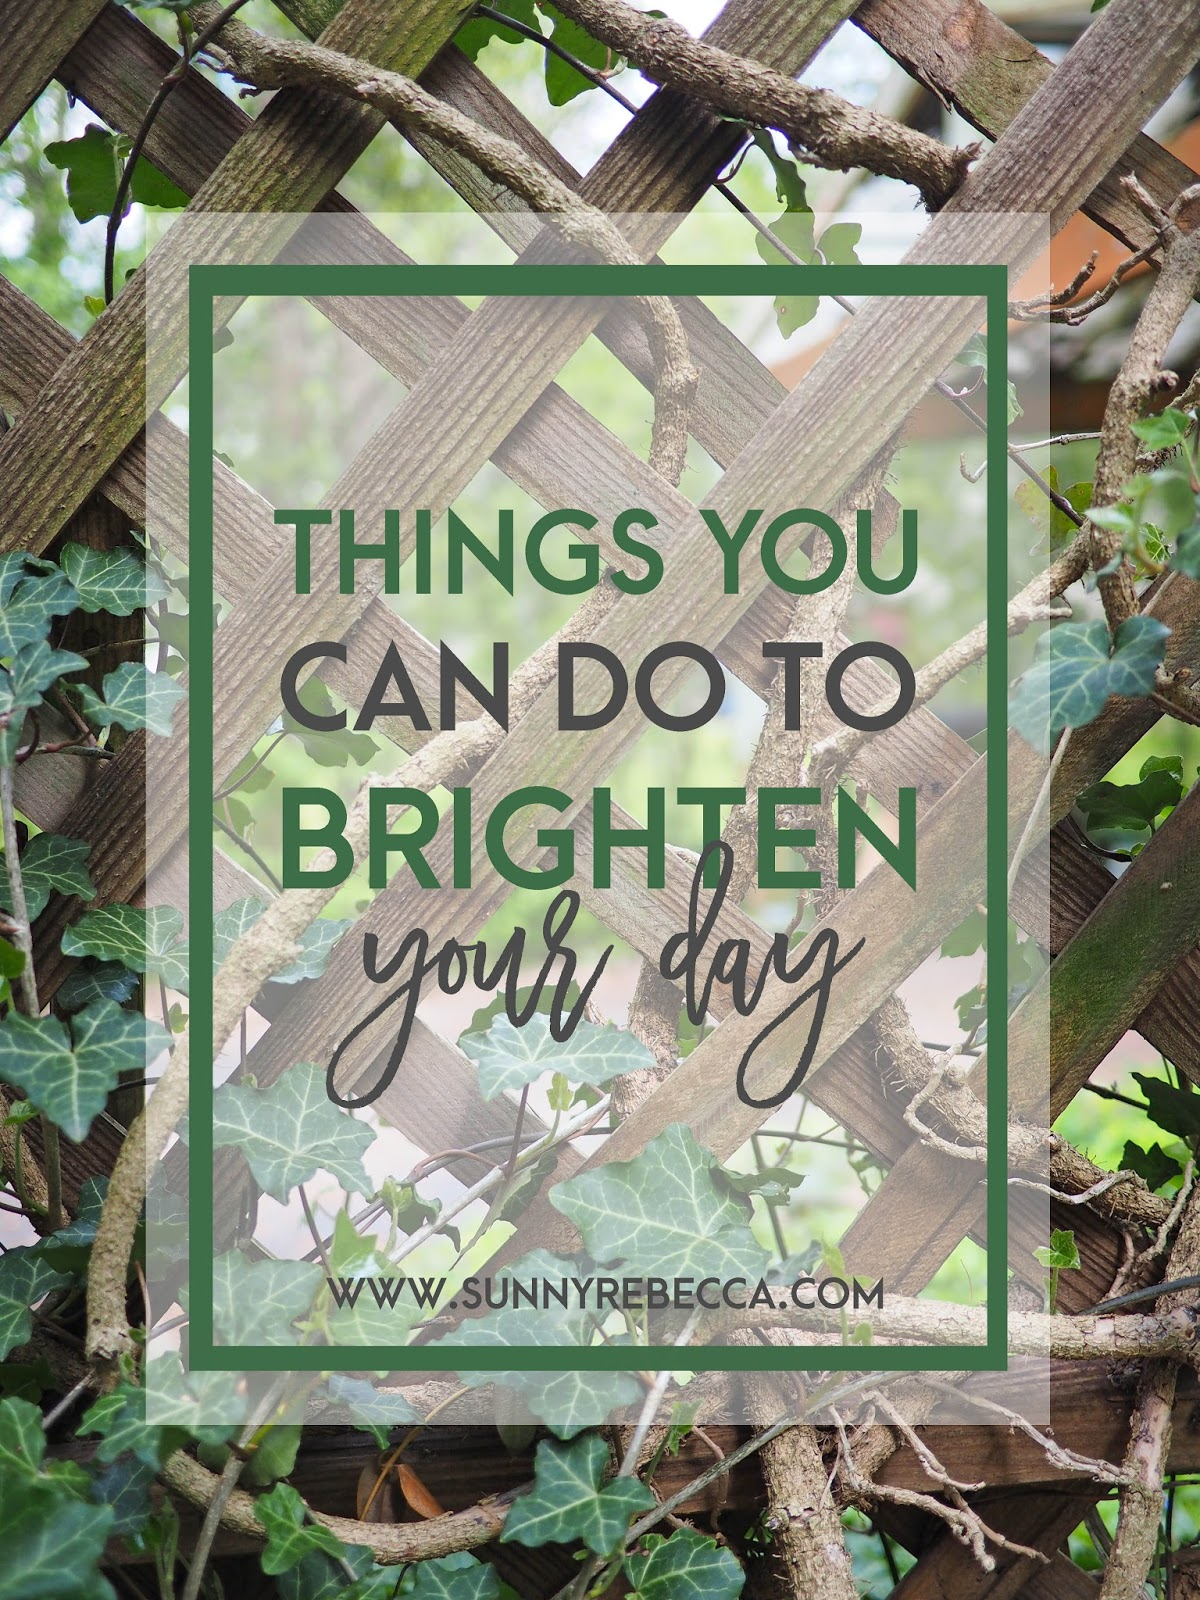 Things You Can Do to Brighten Your Day | Sunny Rebecca